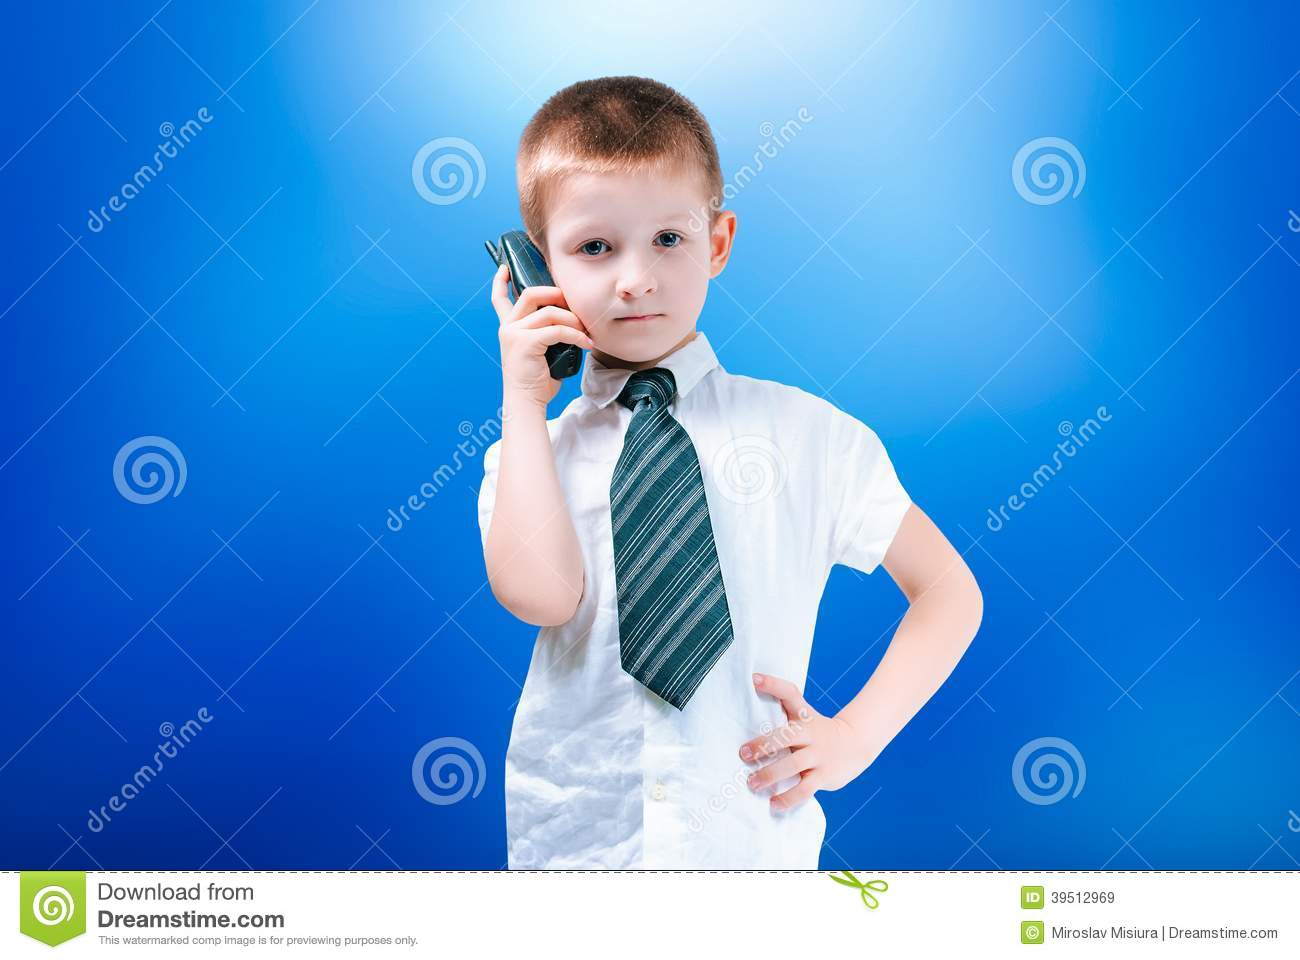 Boy with the phone